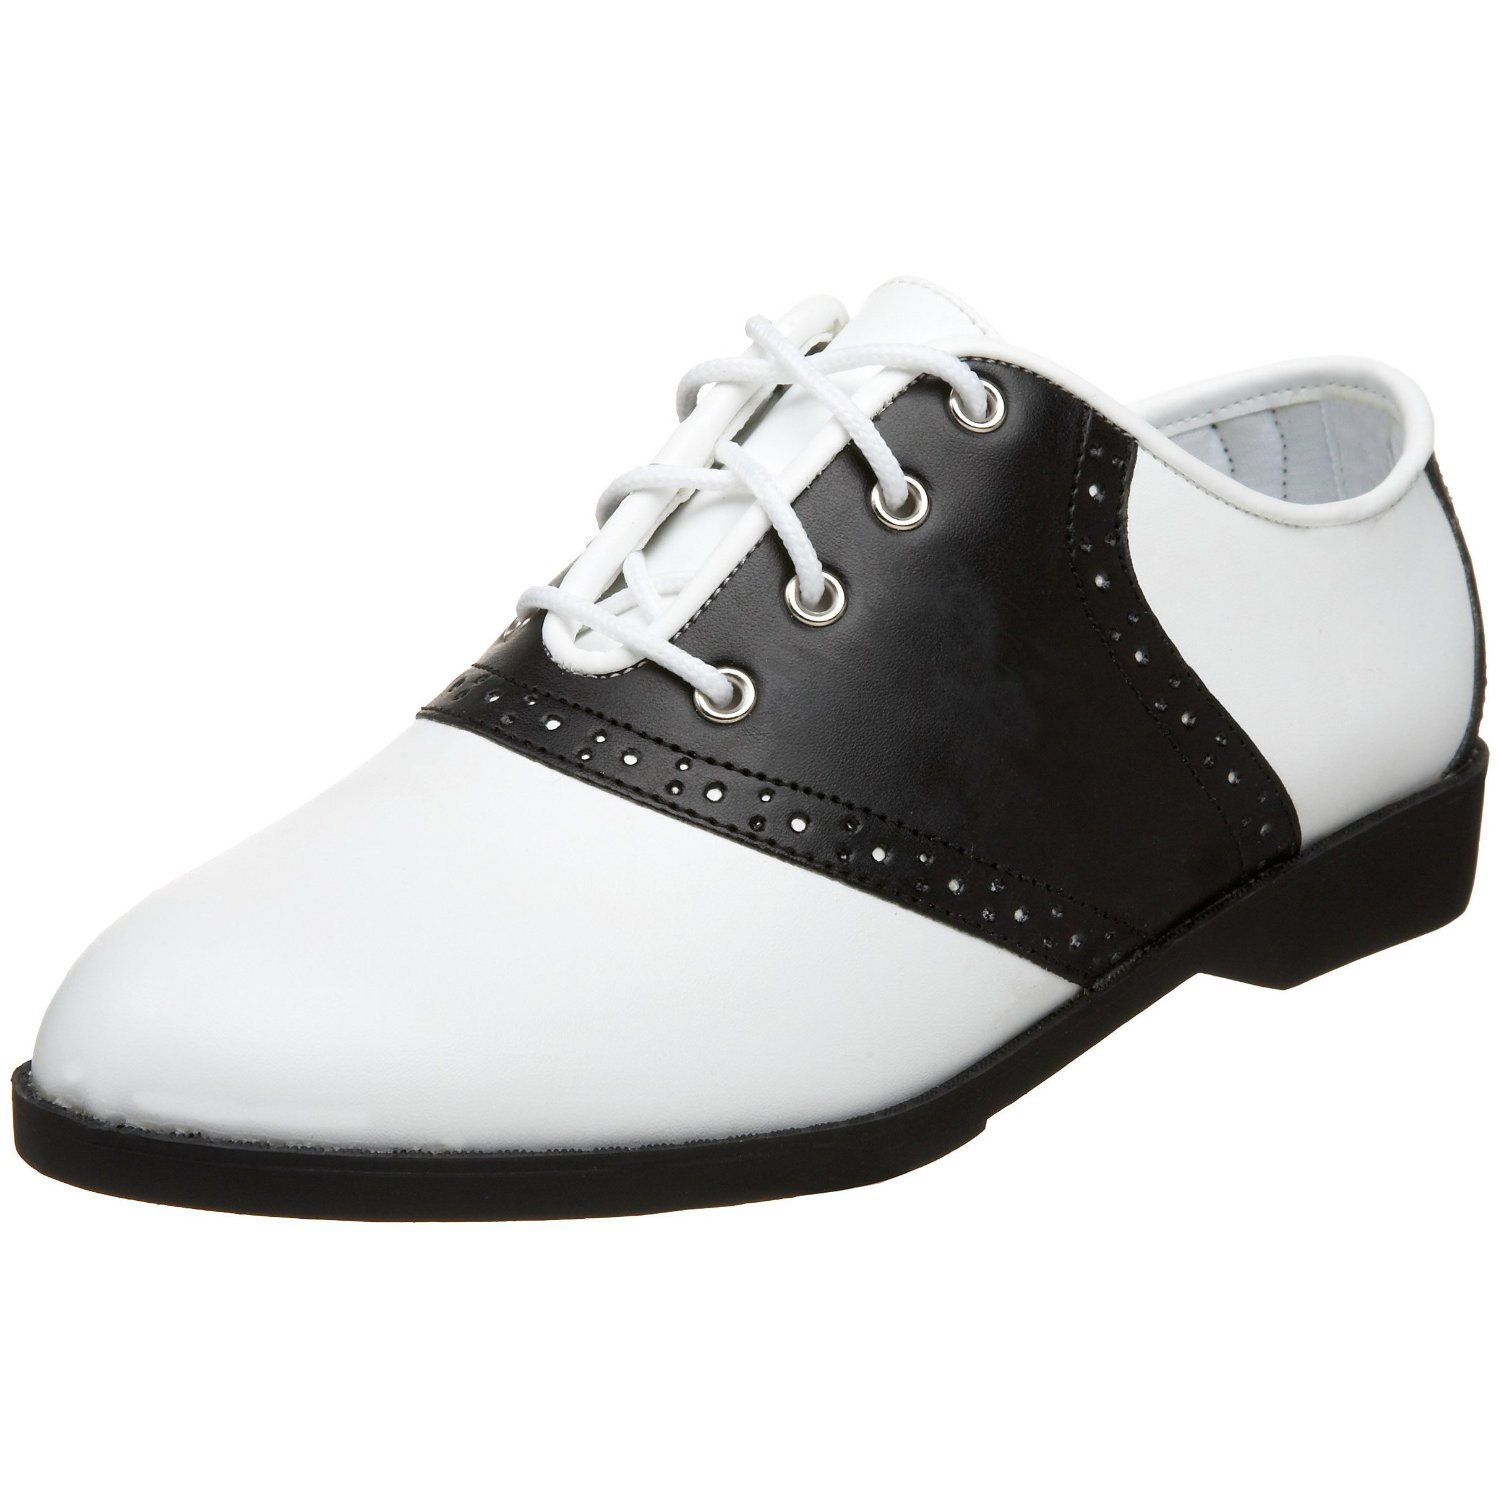 Pin Up Shoes- Heels, Pumps & Flats Ladies Saddle Shoes 1950s Costume Shoes 1950s Saddle Shoes White/Black $29.88 AT vintagedancer.com